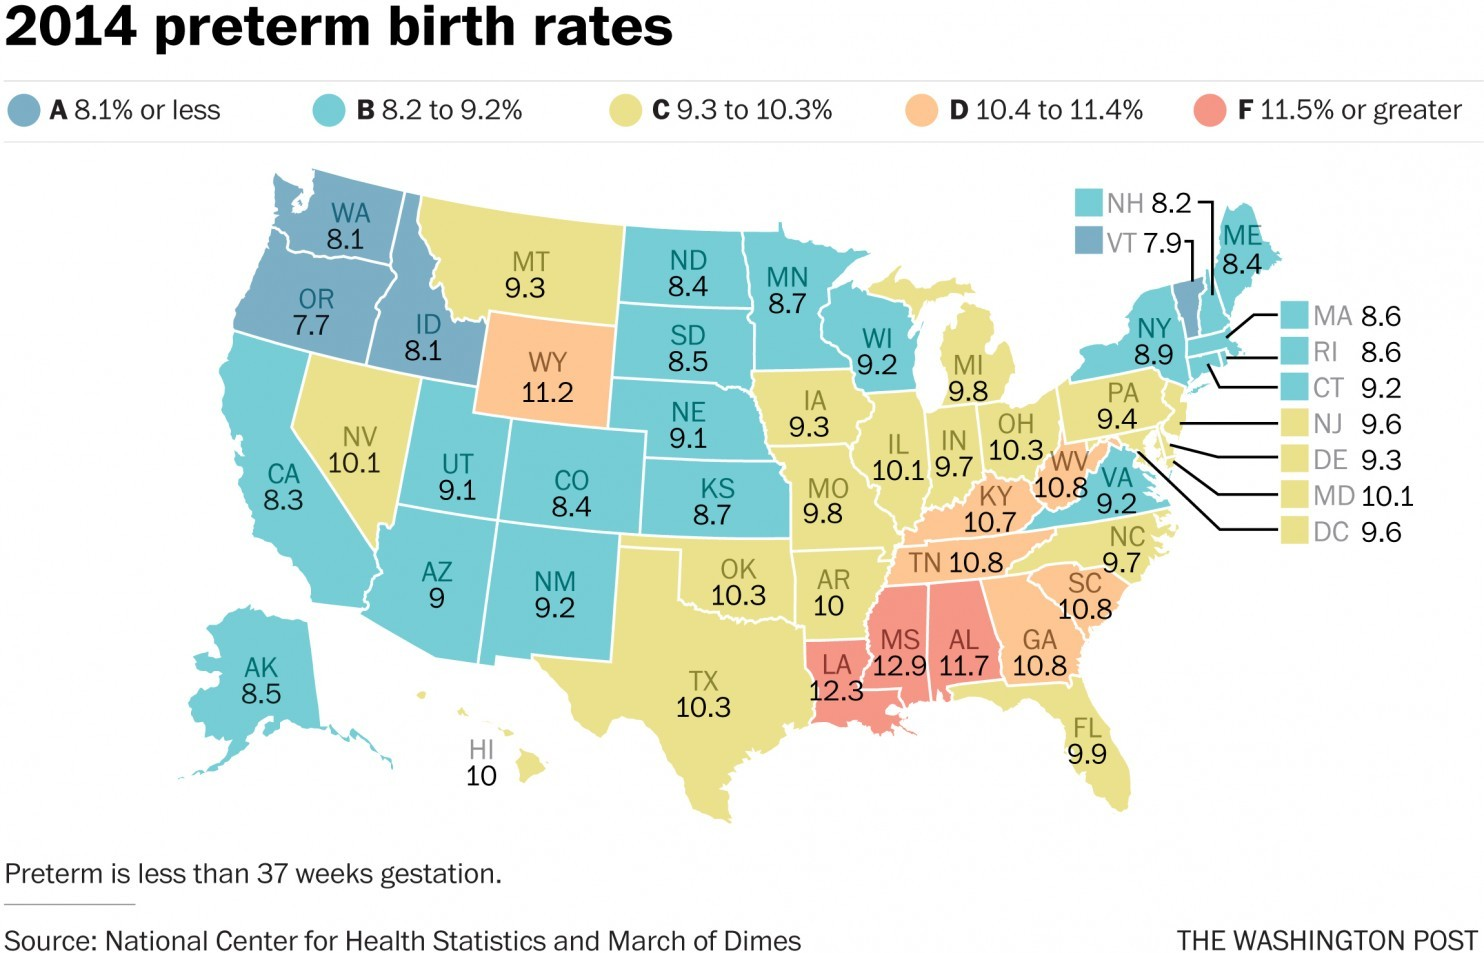 The states where more babies are born prematurely